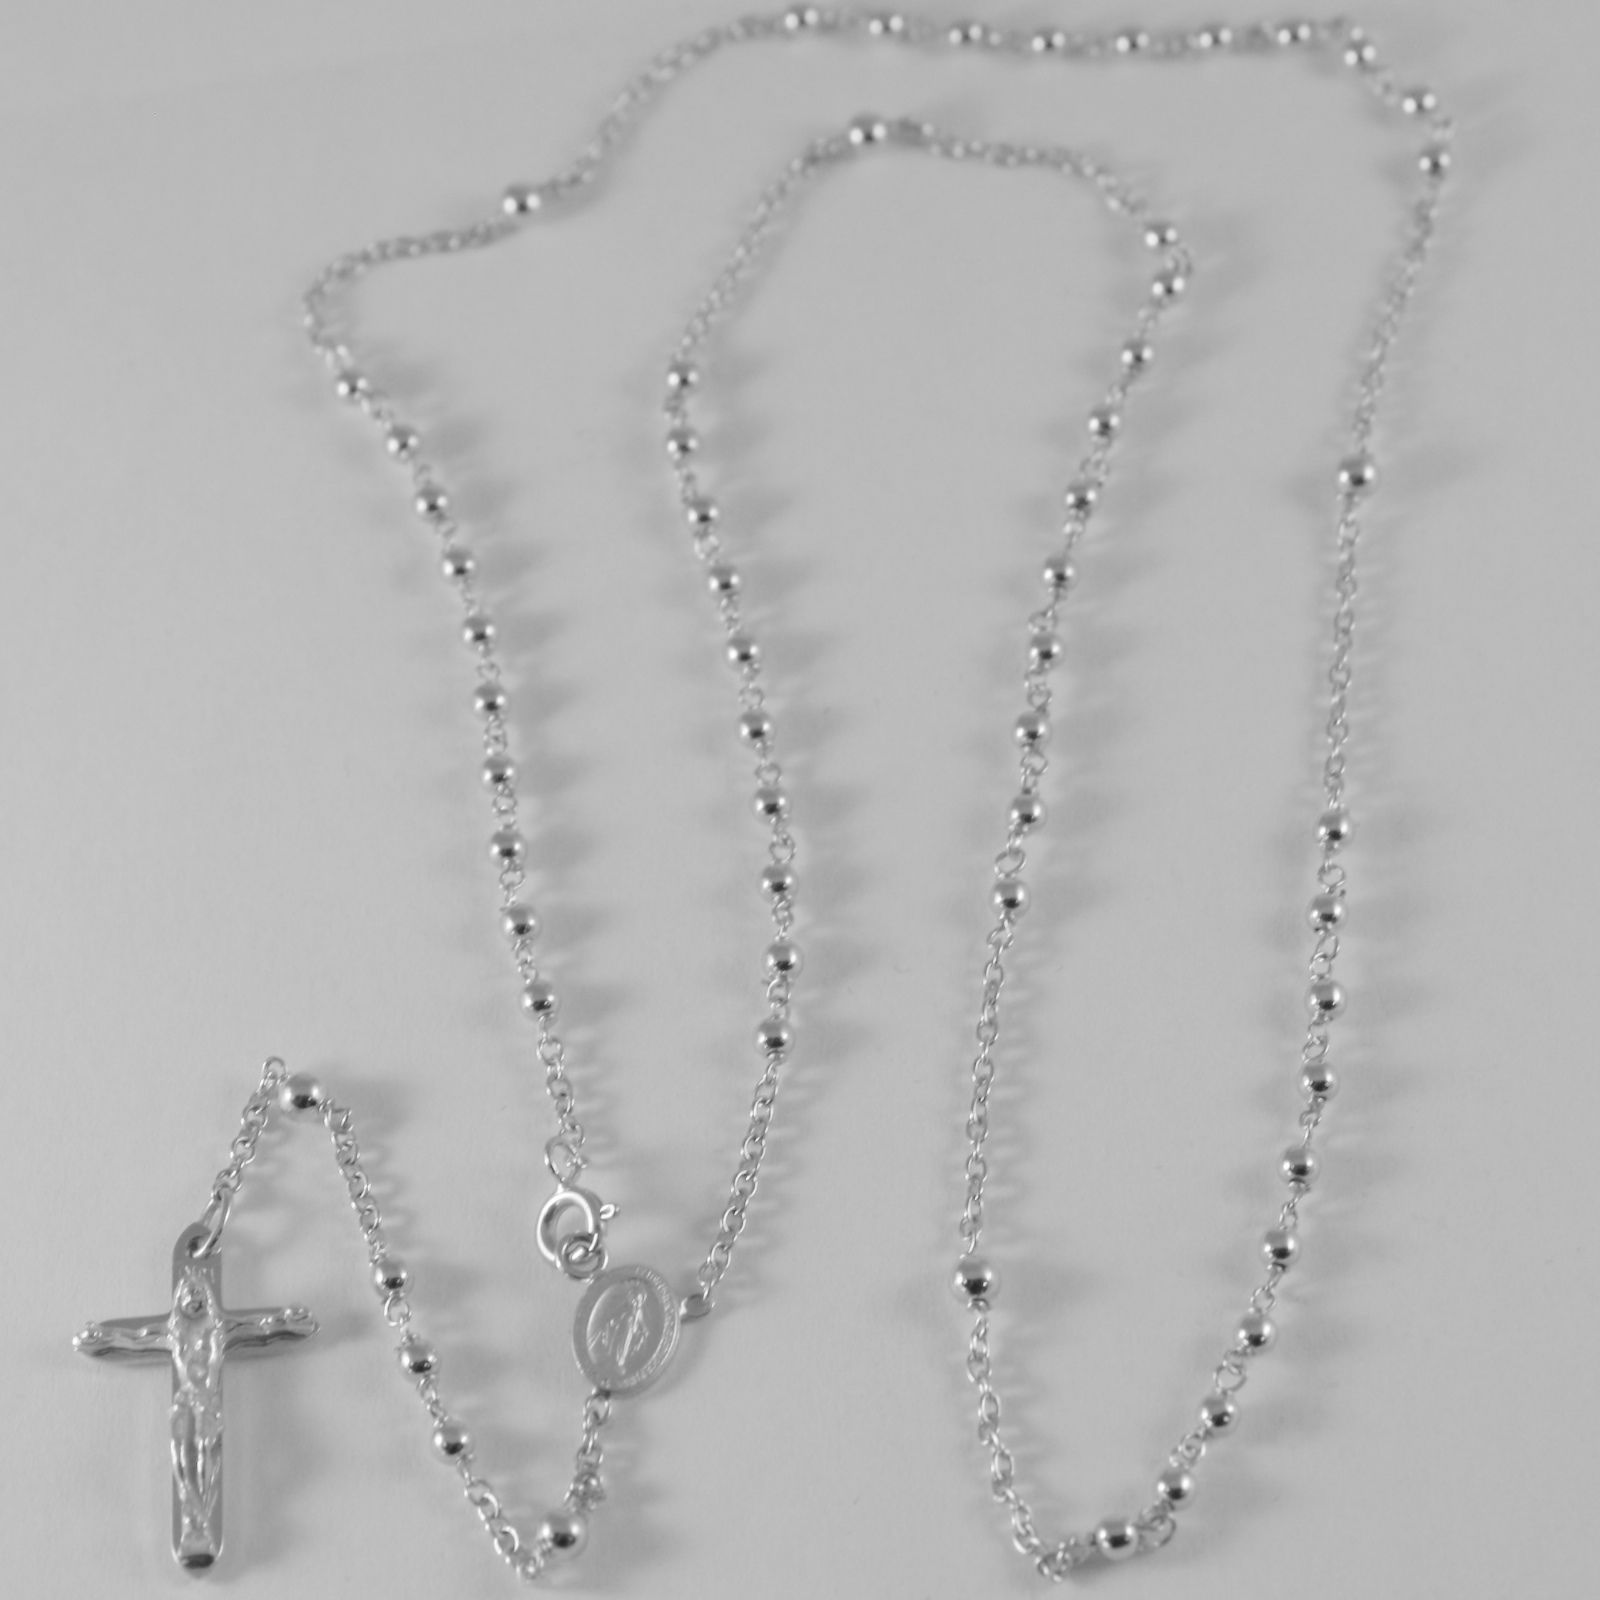 18K WHITE GOLD ROSARY NECKLACE MIRACULOUS MARY MEDAL & JESUS CROSS MADE IN ITALY